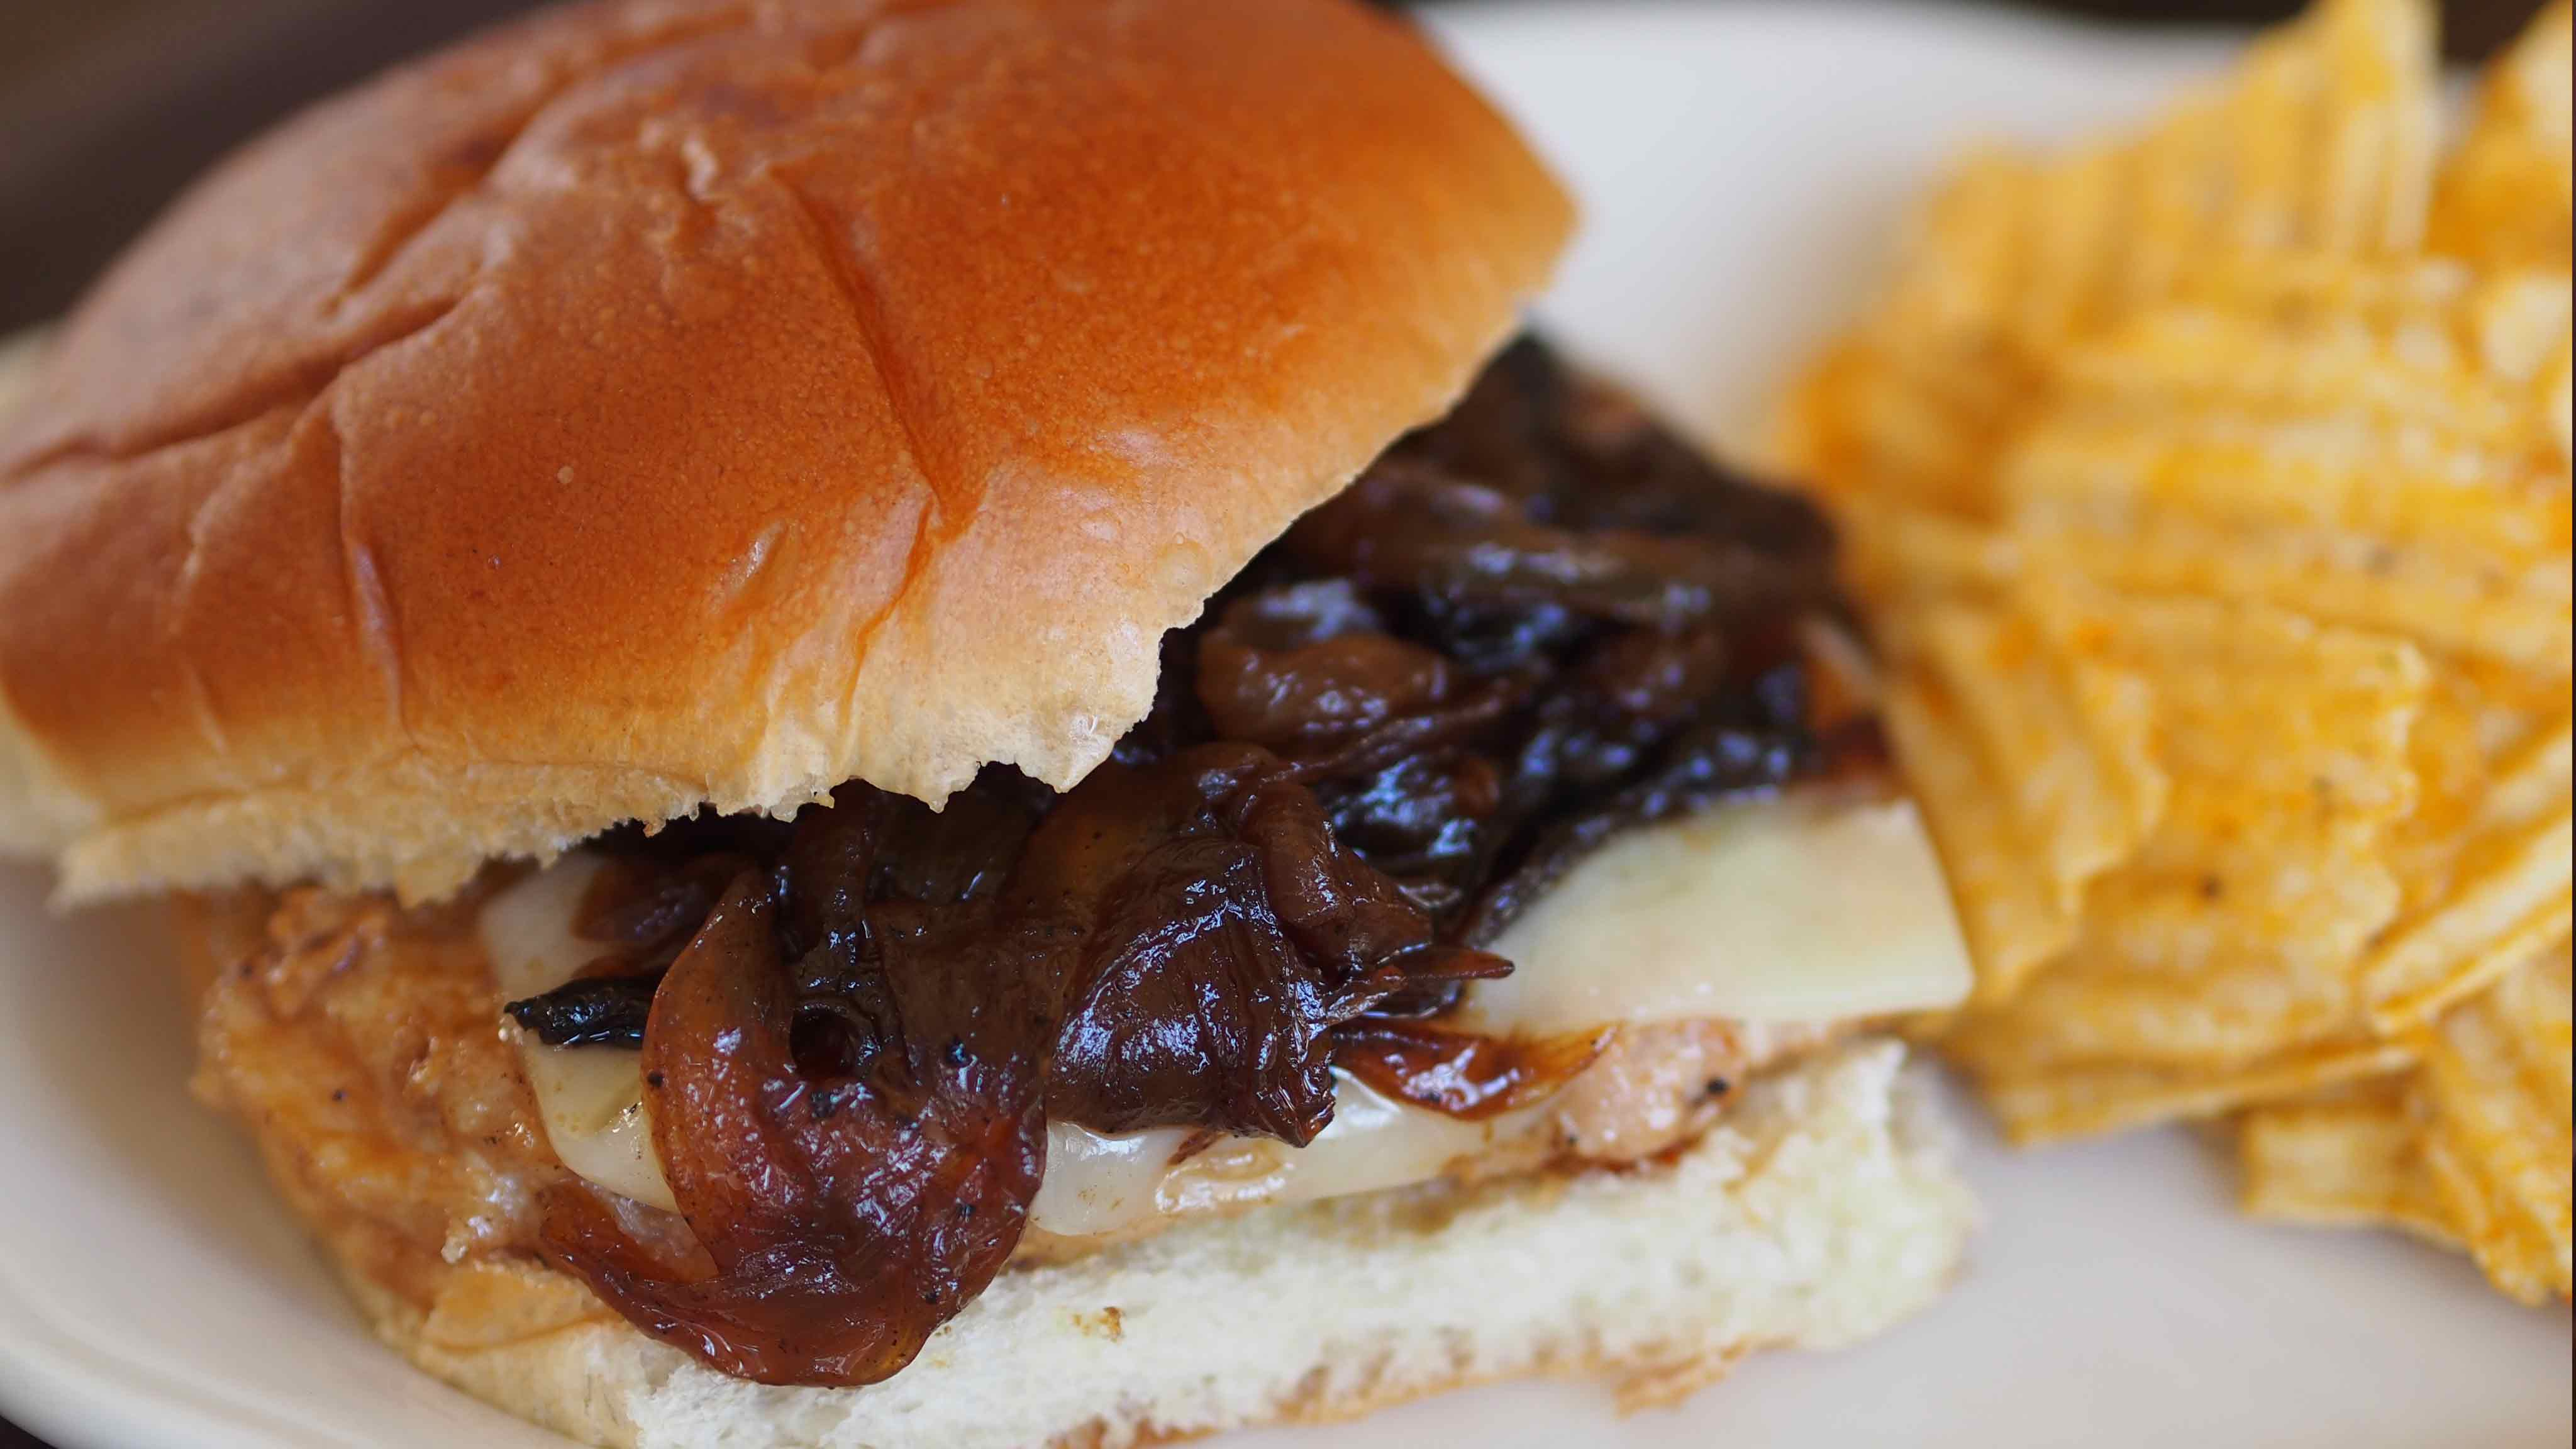 Image for Recipe Pan Fried Pork Sandwich with Caramelized Onions